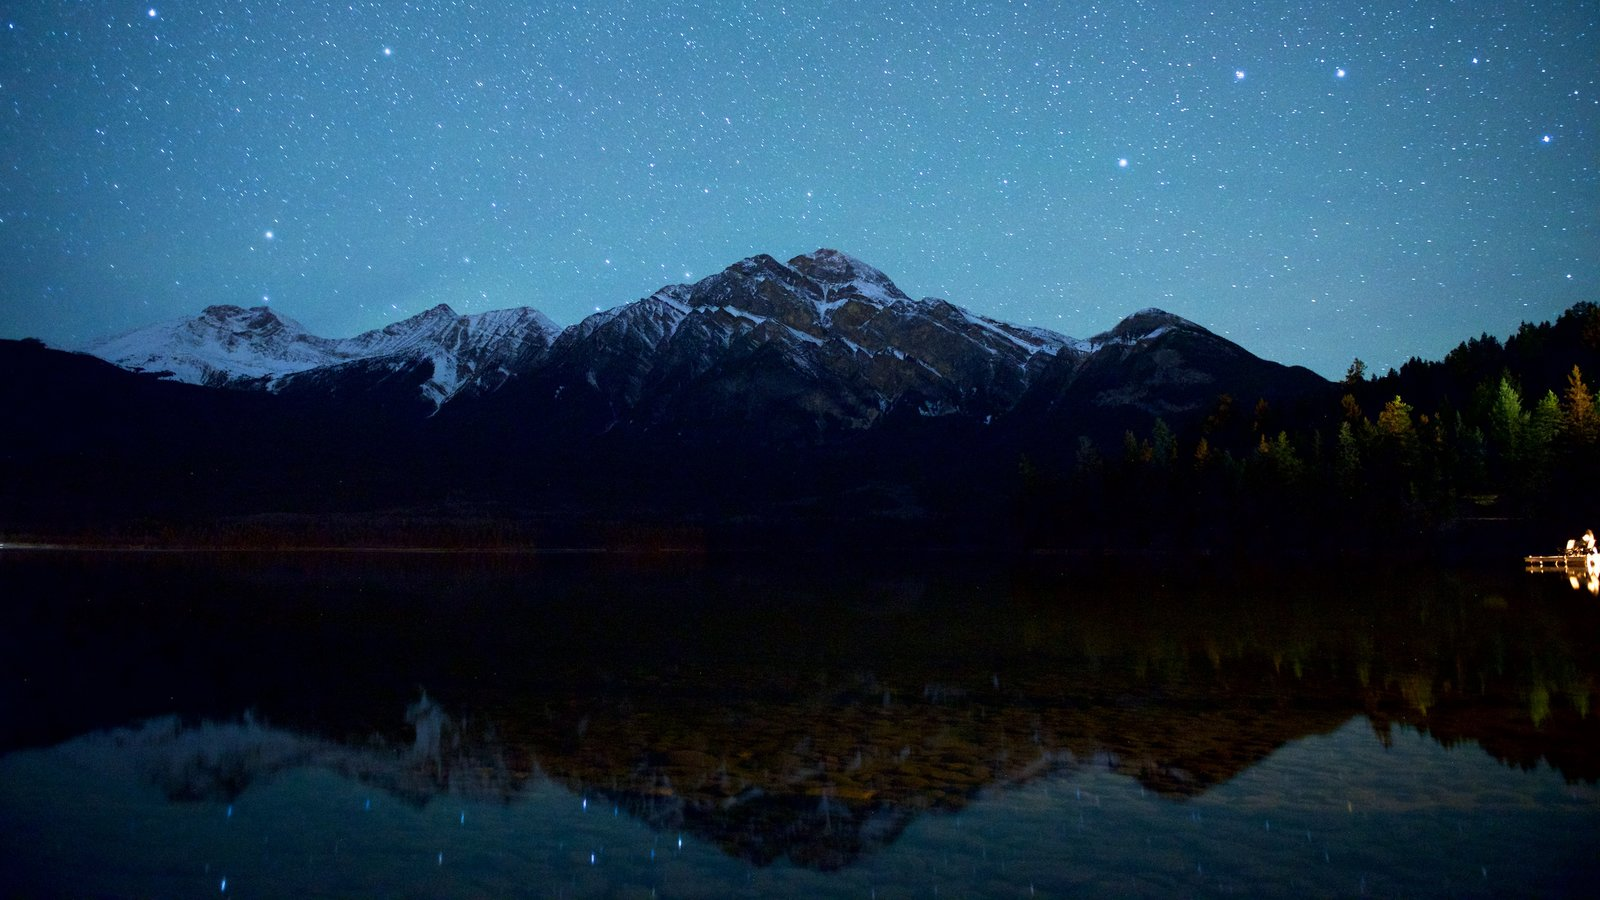 Jasper National Park showing northern lights, mountains and a lake or waterhole